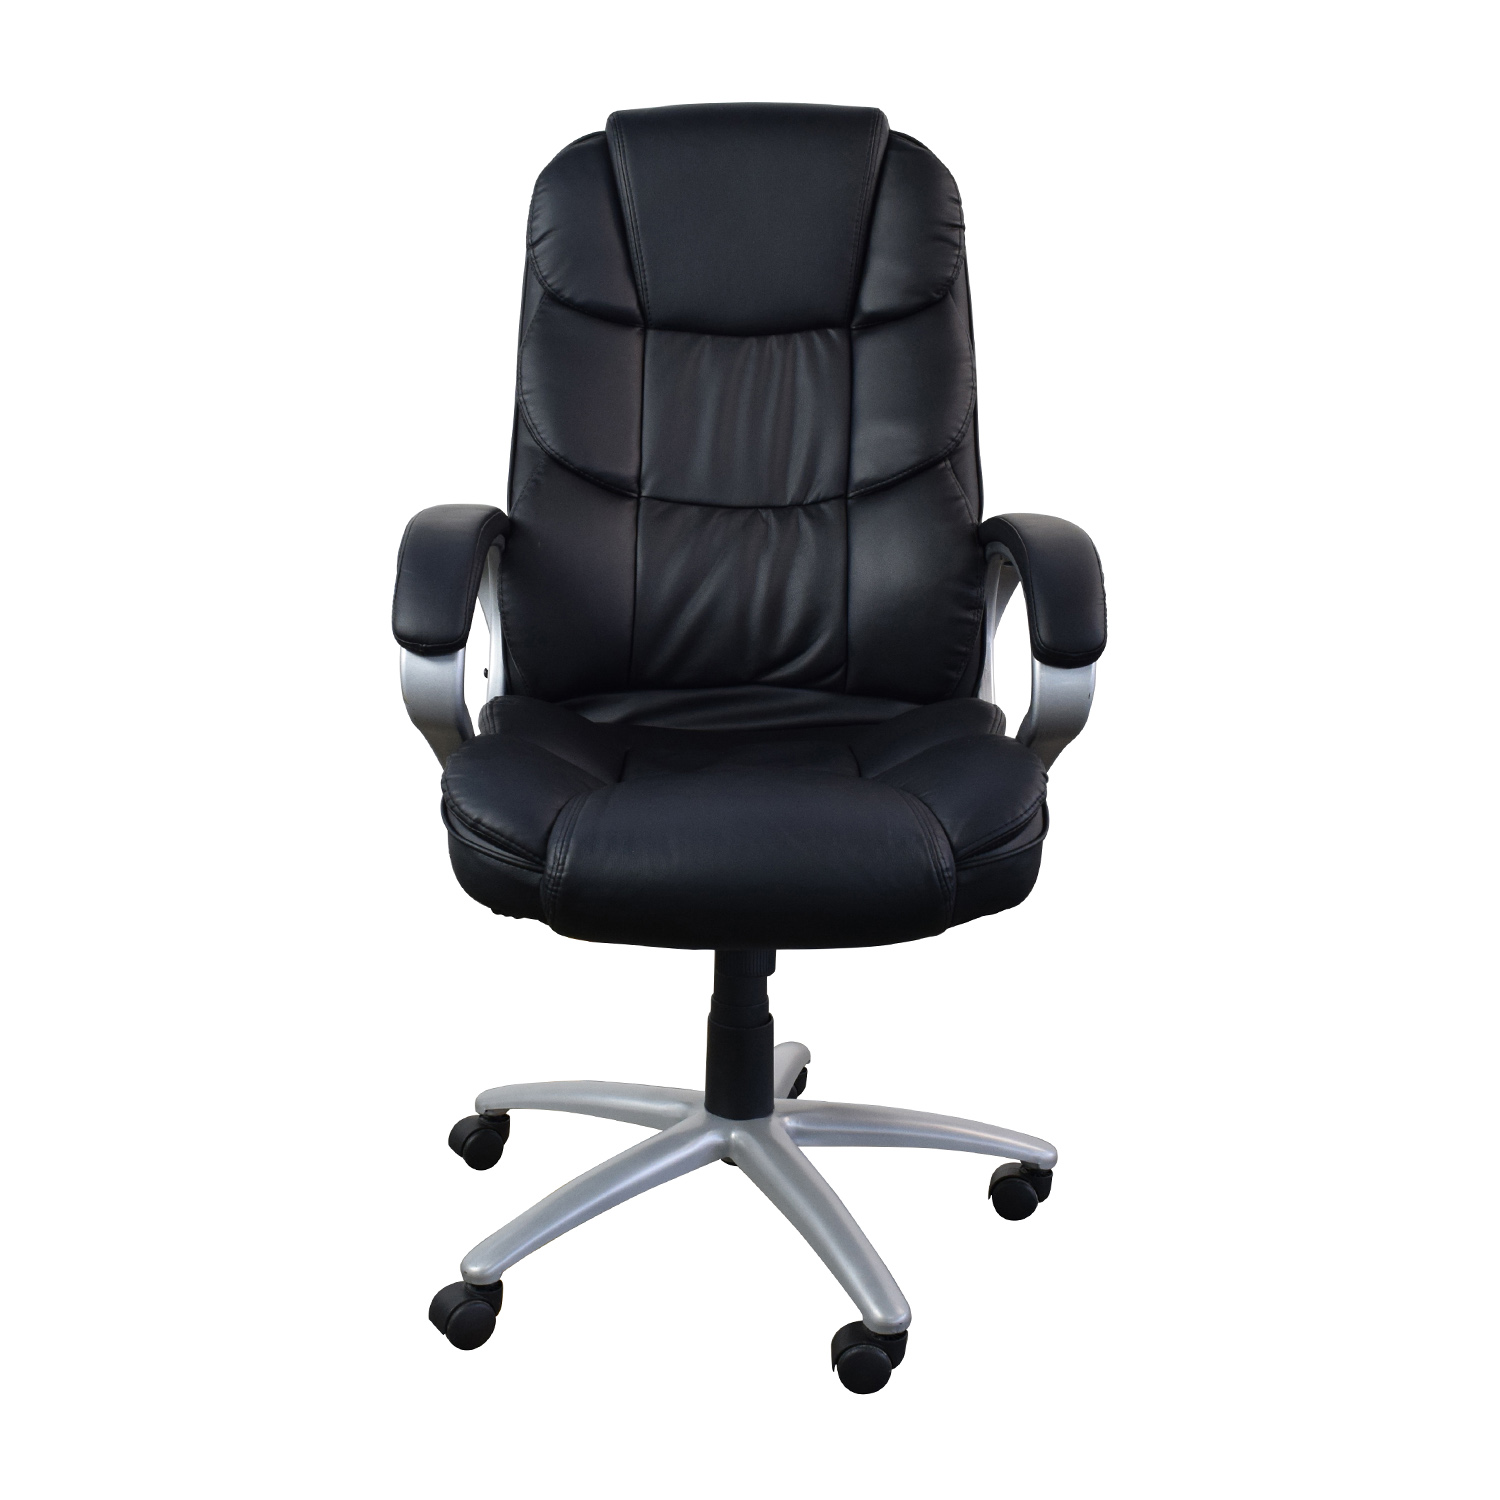 buy  Black Leather Executive Office Chair online